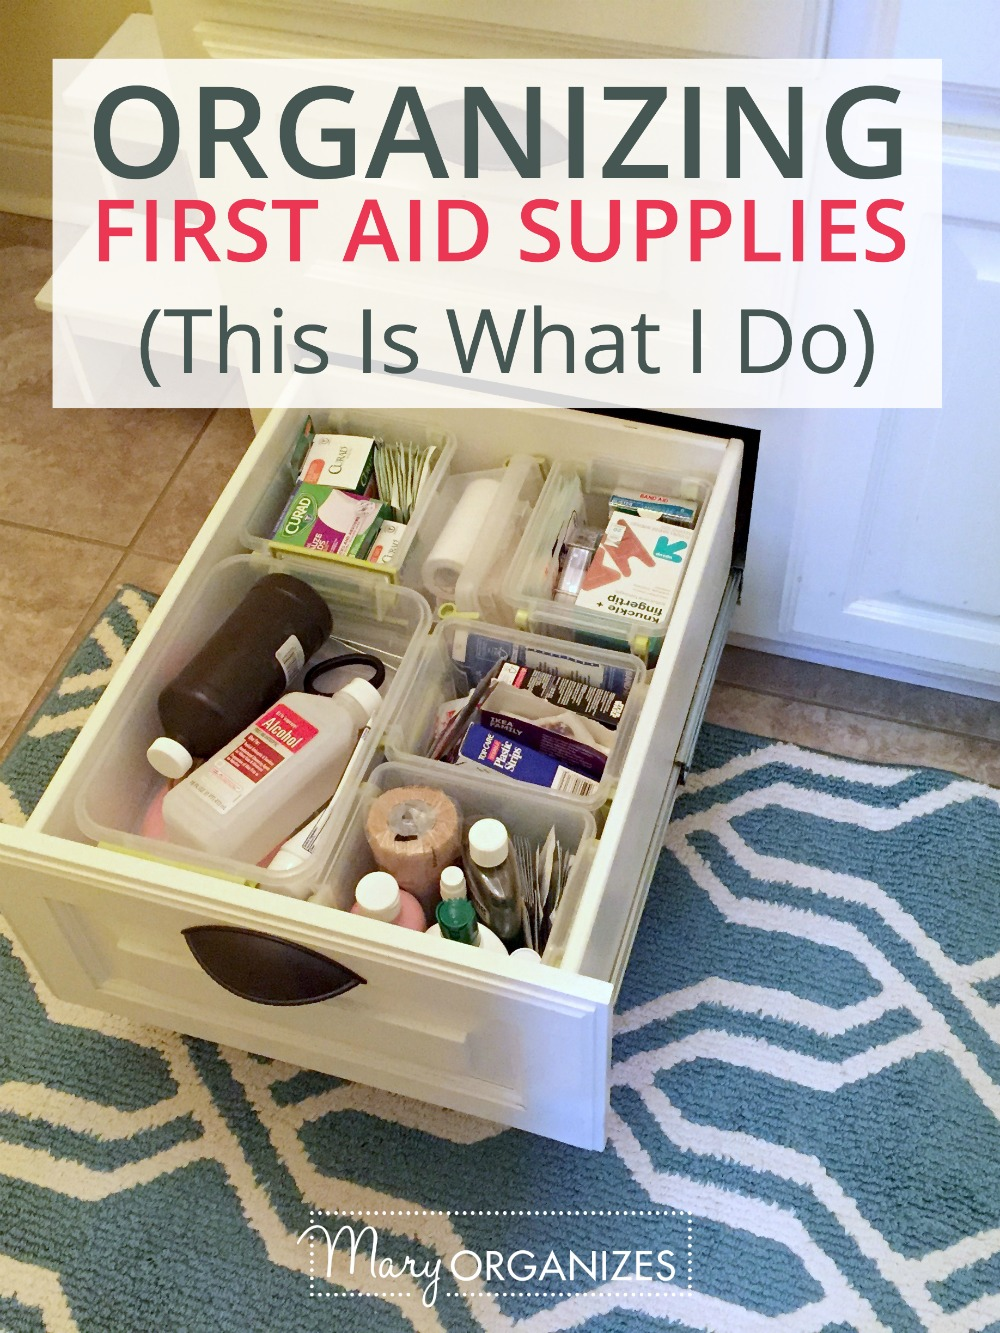 Organizing First Aid Supplies - This is what I do - Mary ORGANIZES -v